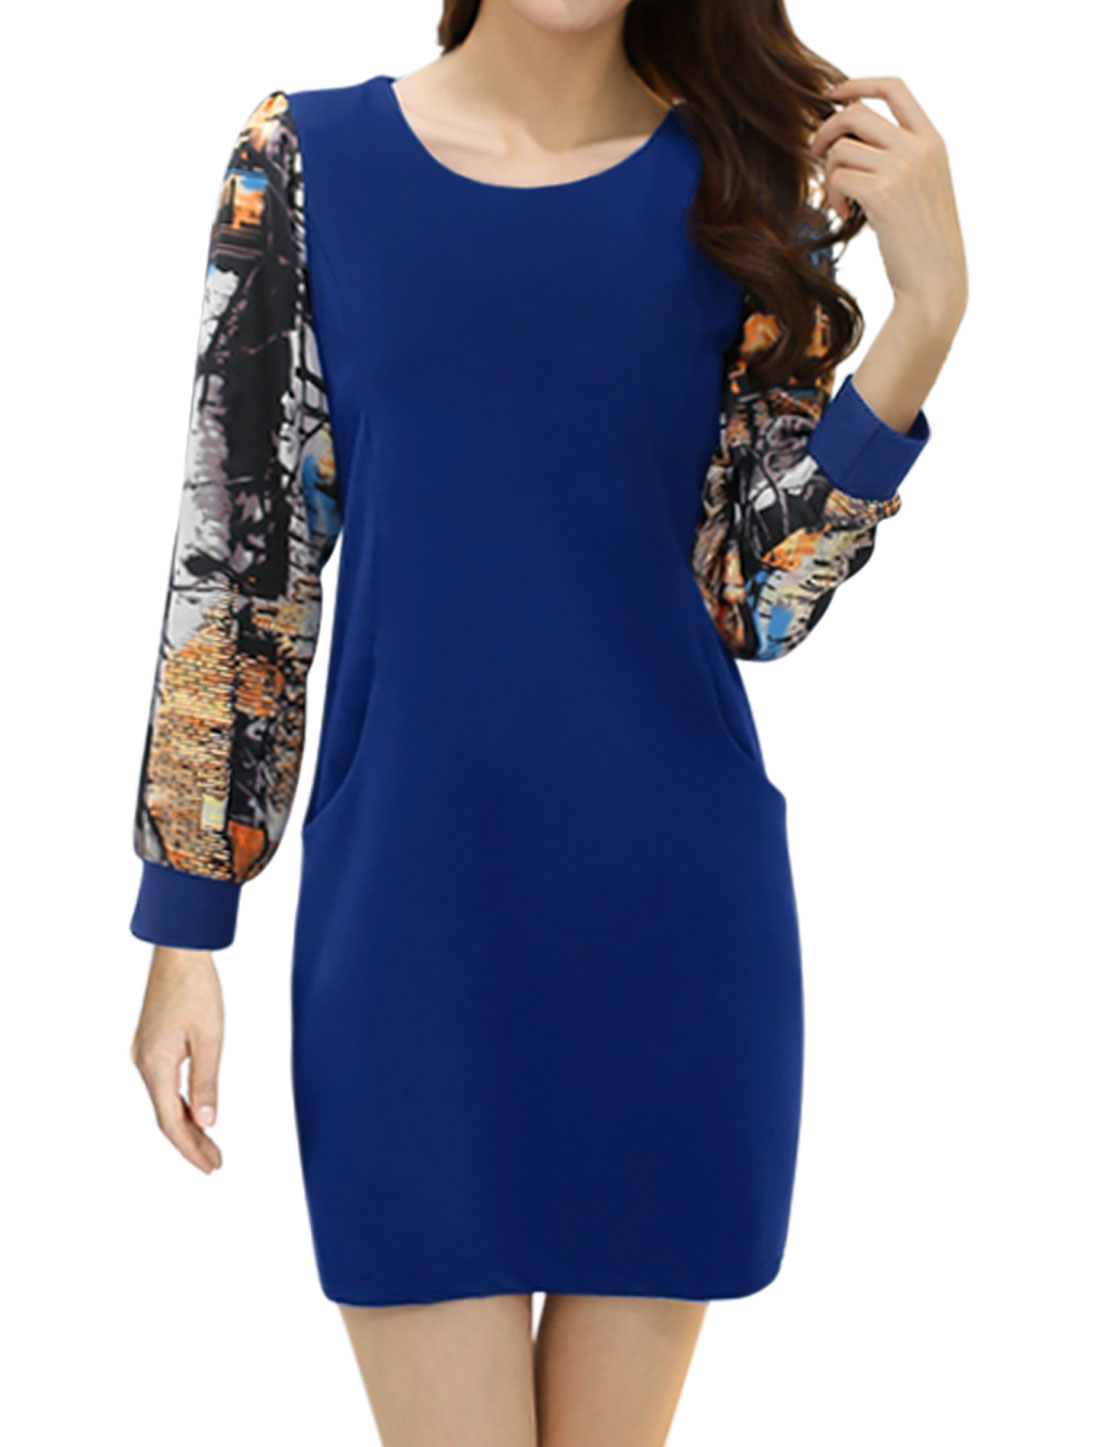 Women Novelty Prints Long Sleeves Paneled Tunic Dress Blue M